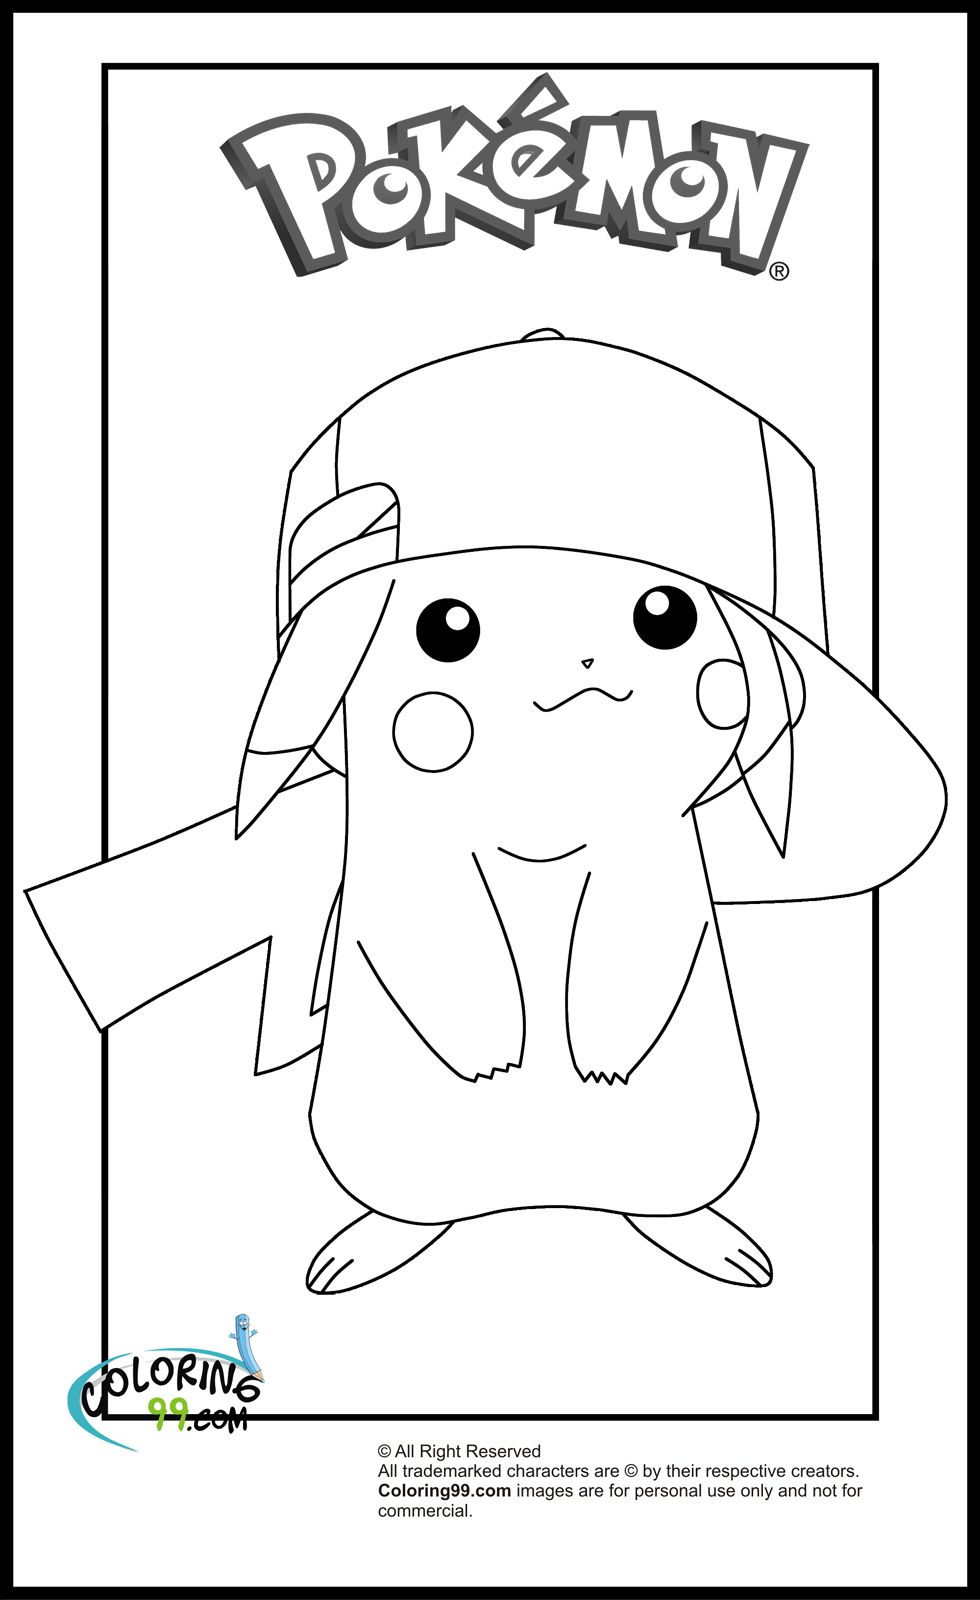 Eevee and pikachu coloring pages - Pikachu Coloring Pages Minister Coloring